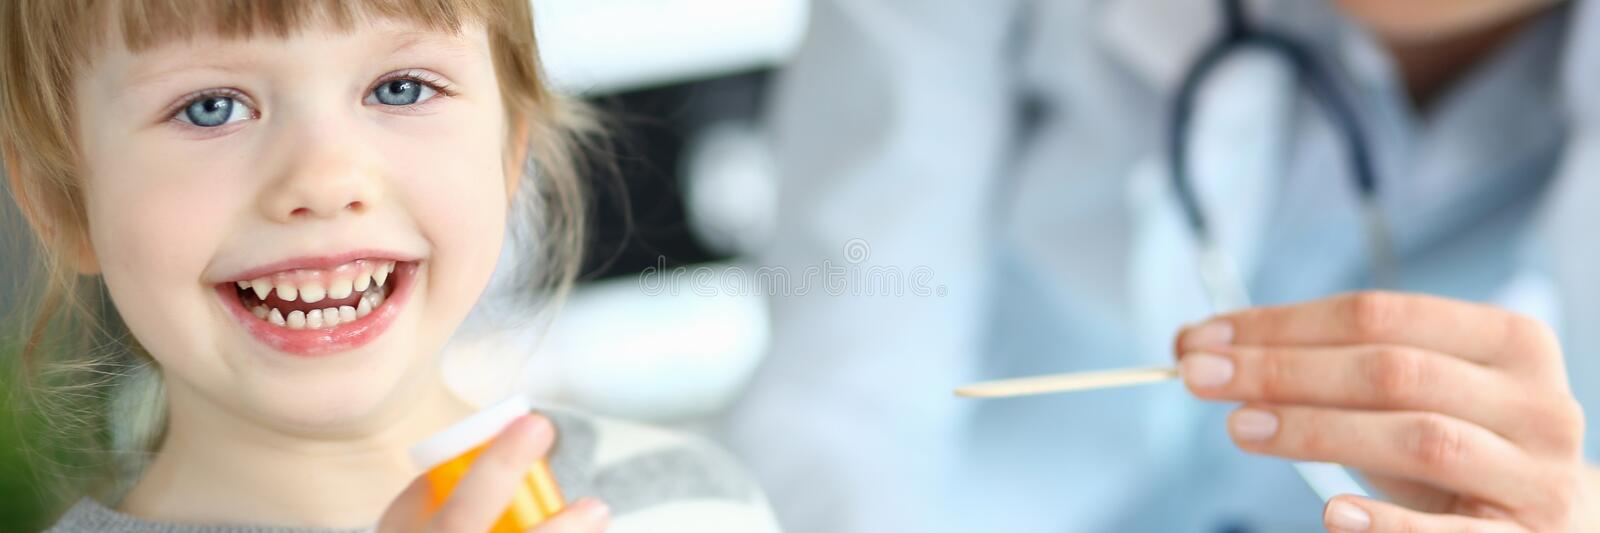 Cute smiling happy little girl hold in hand bottle of tablets at doctor office royalty free stock photo